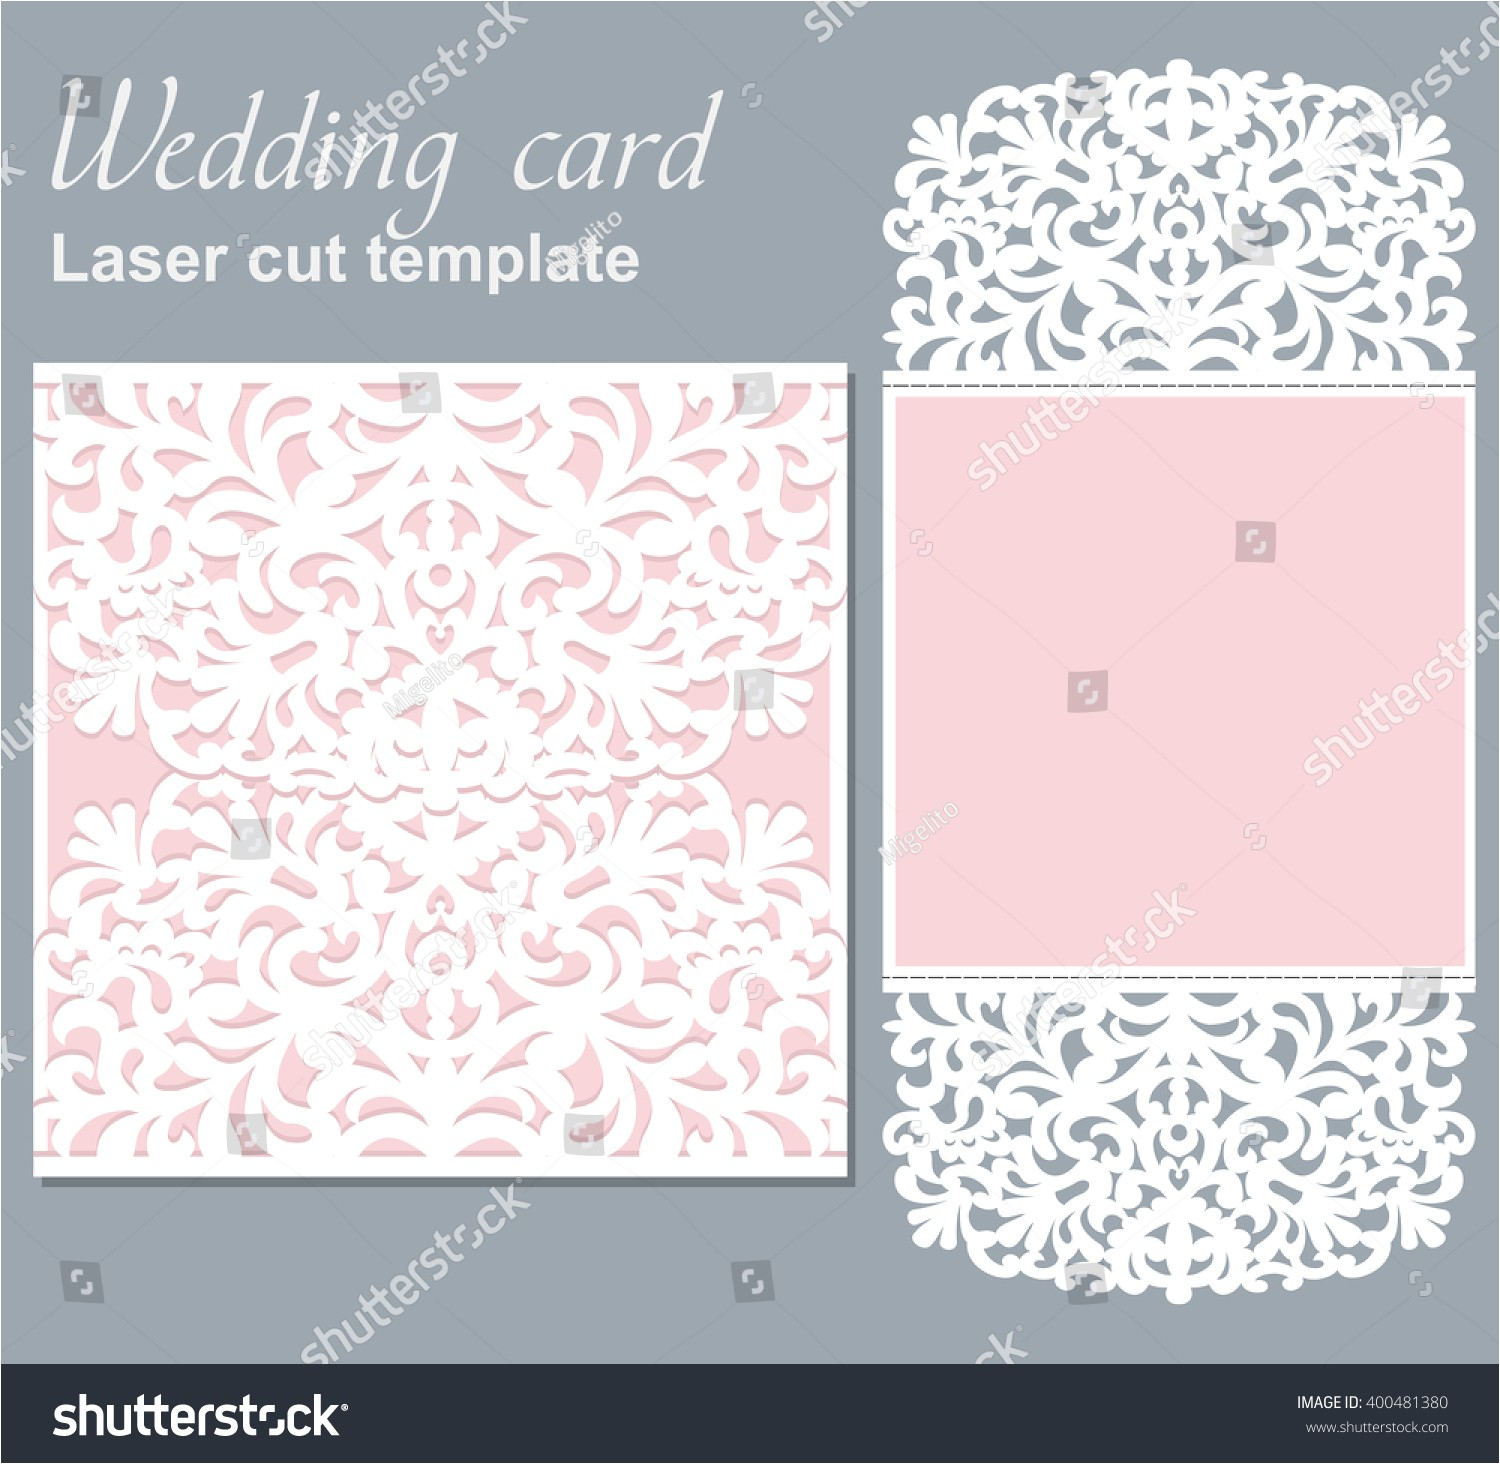 vector die laser cut wedding card 400481380